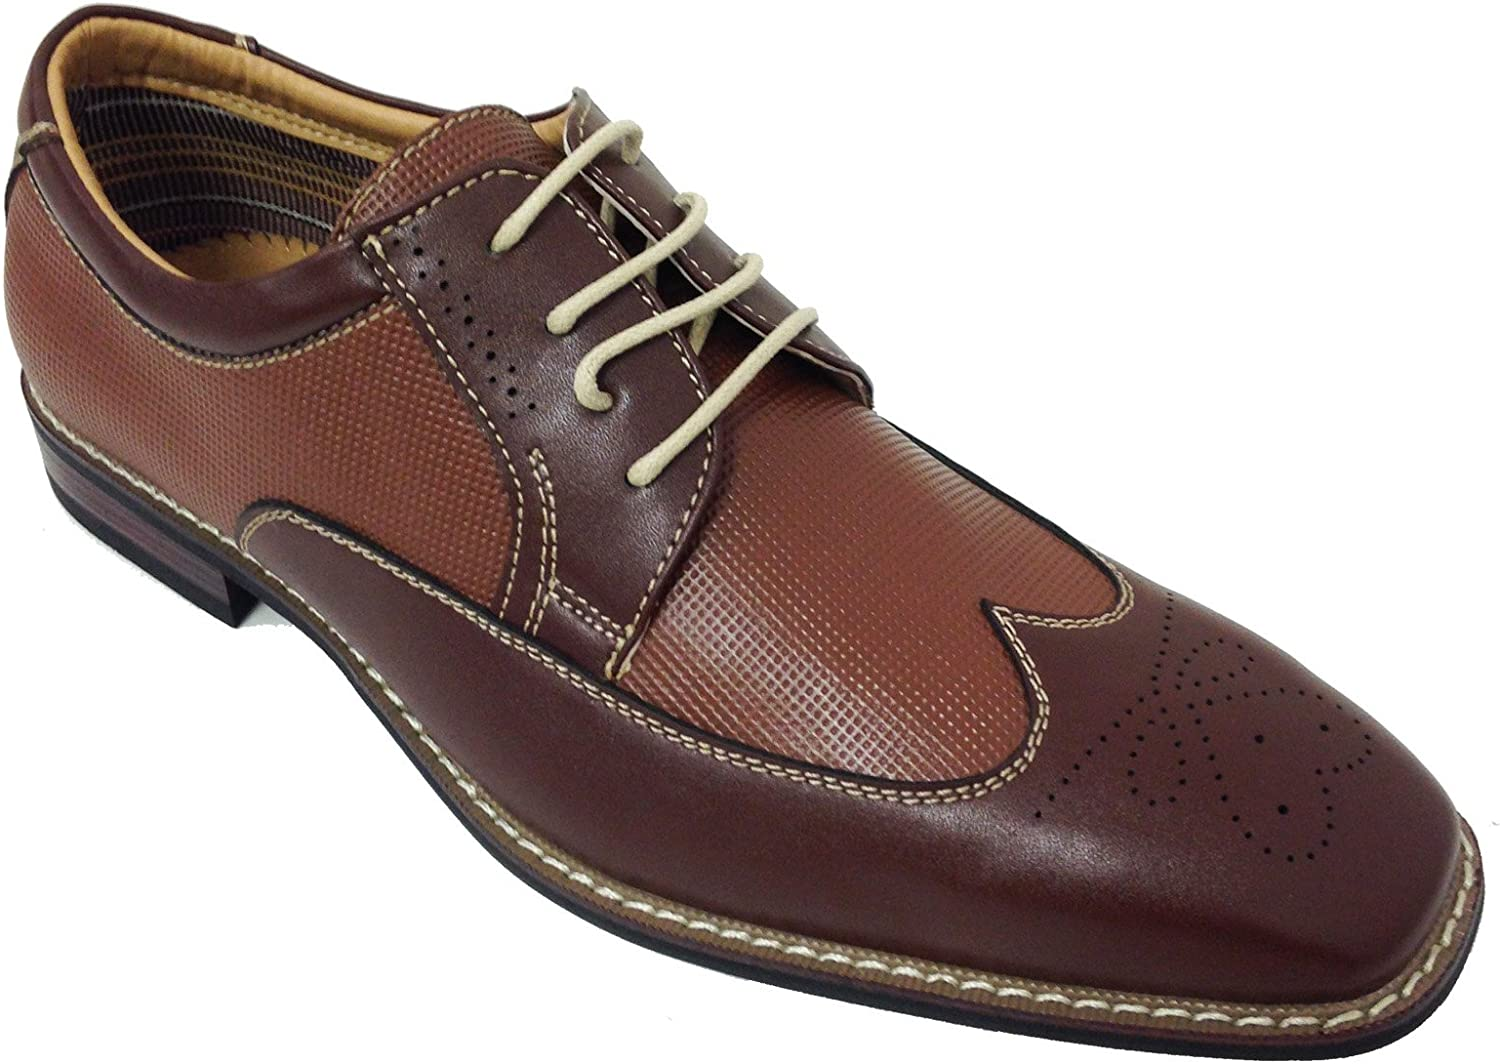 BL-19280 Men's Wing Tip Oxfords Lace up Leather Lined Casual Italy Style Dress Shoes, White, Brown